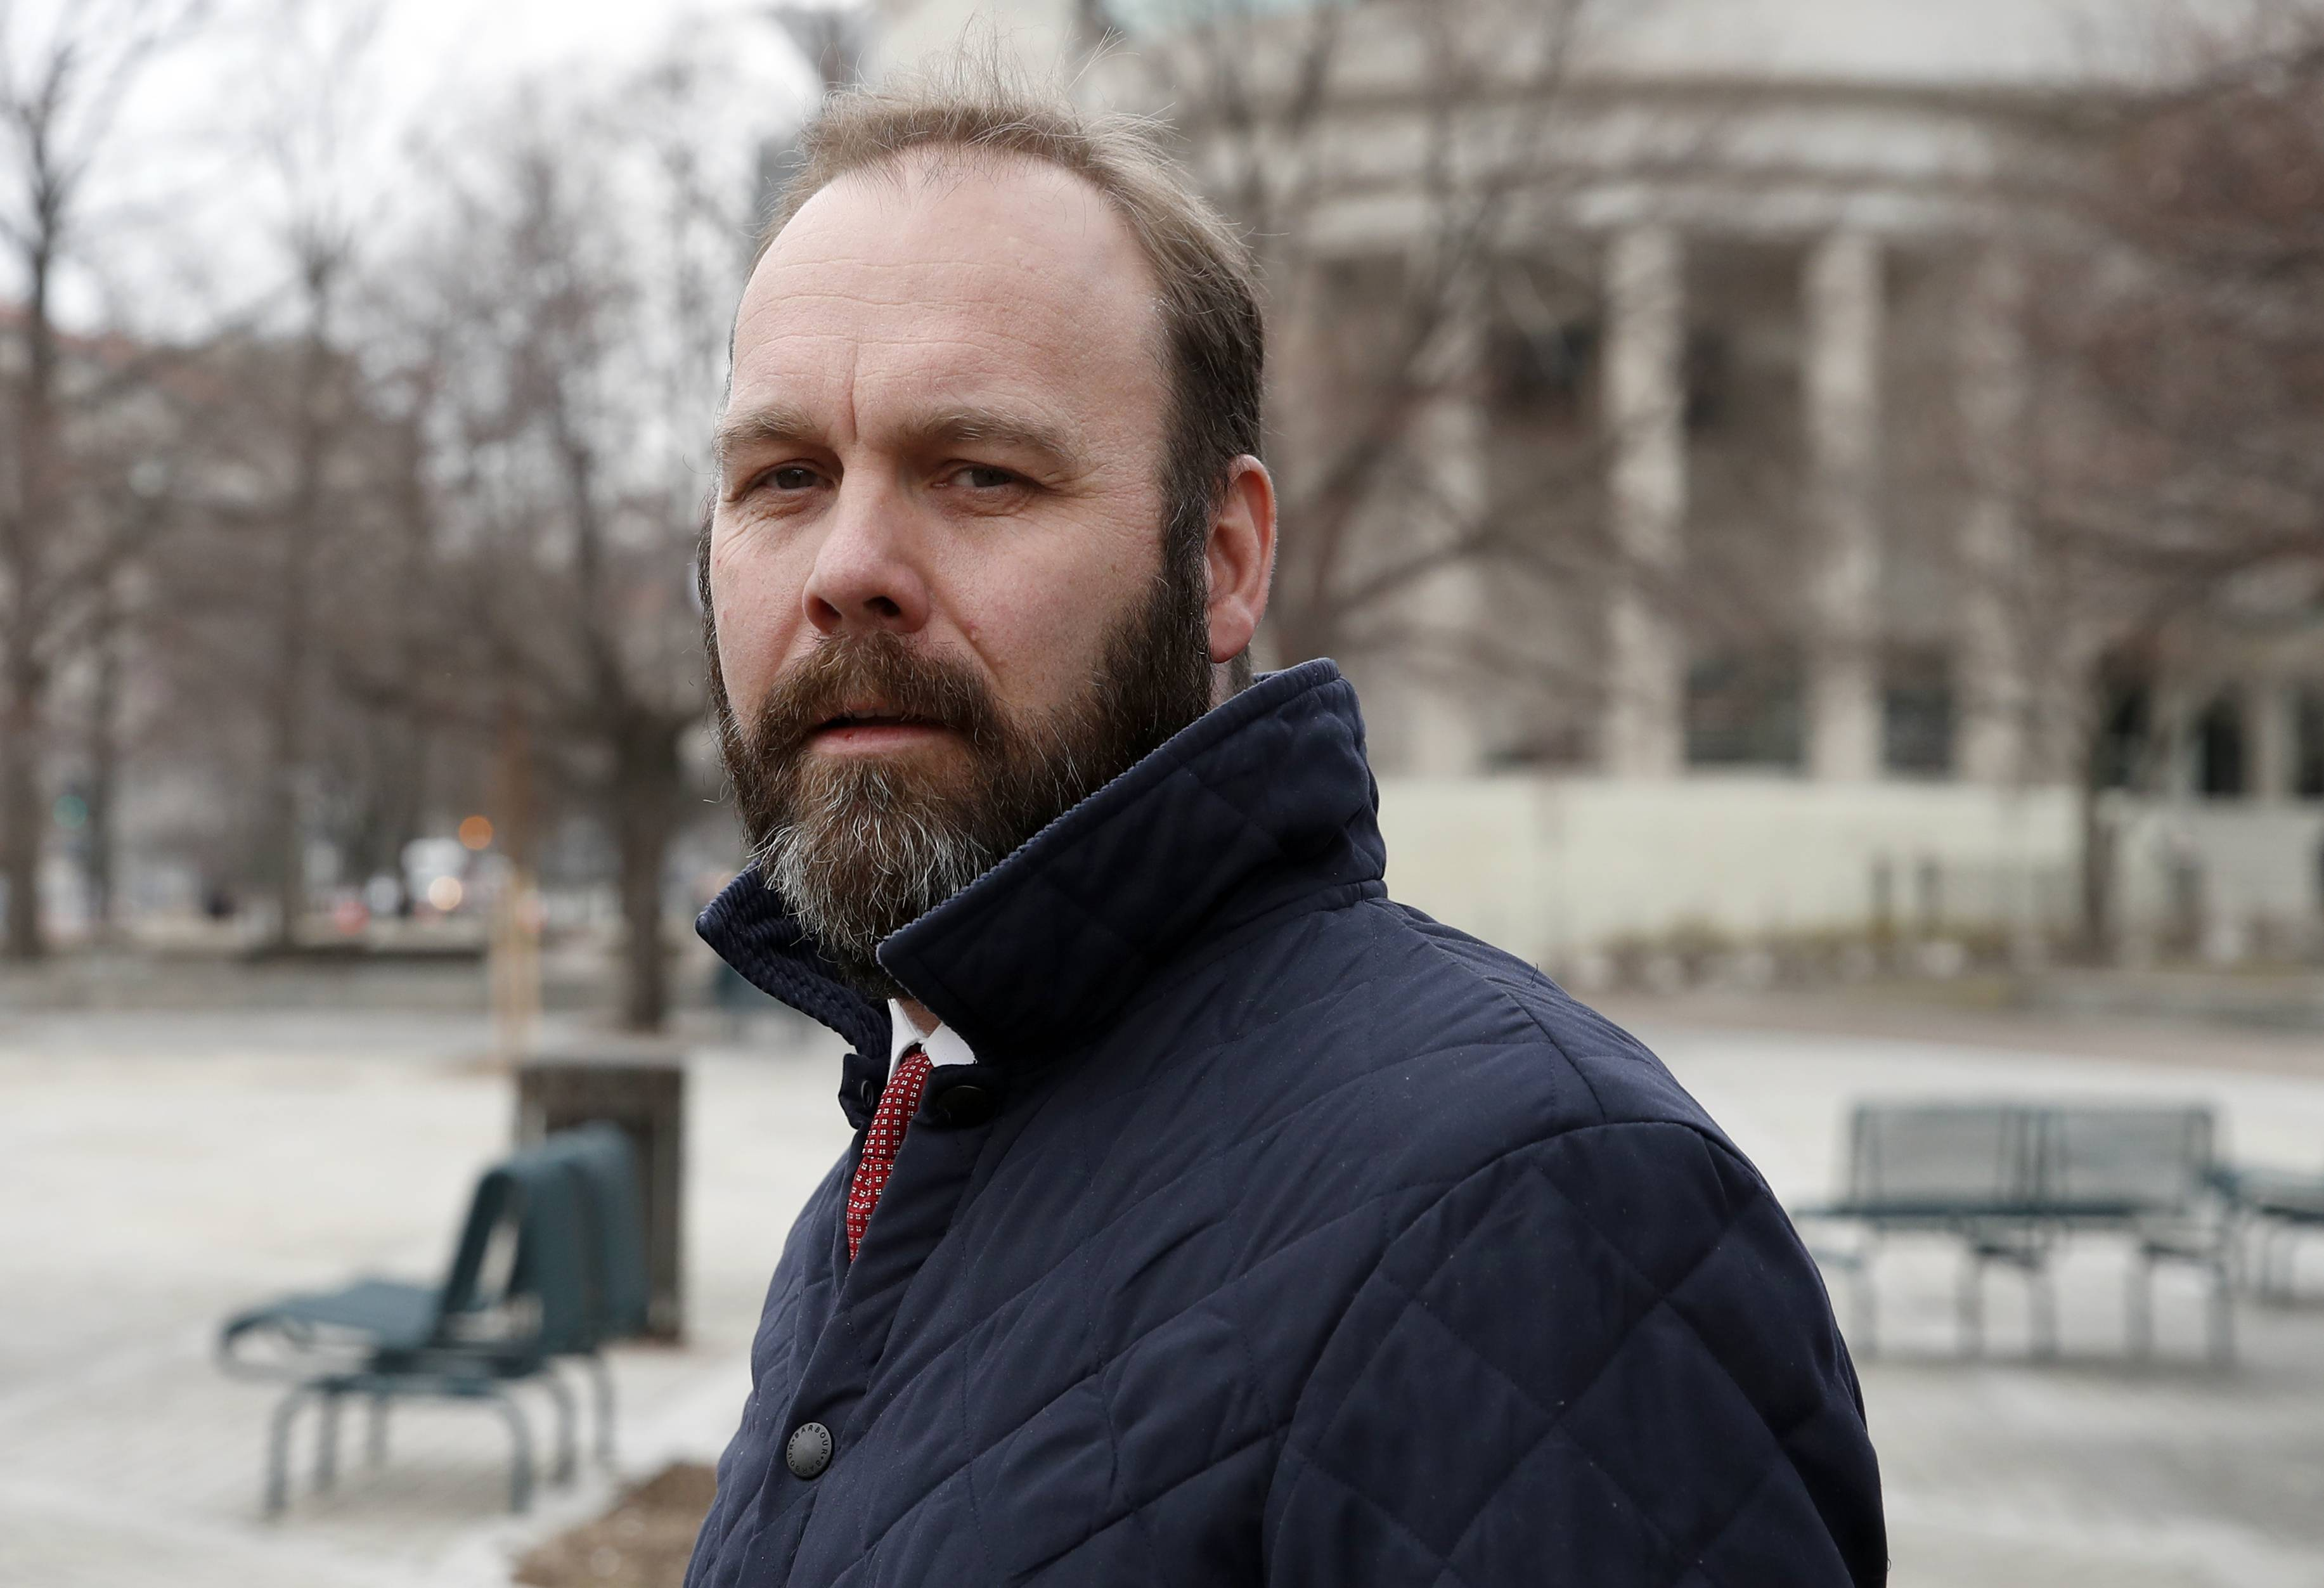 Rick Gates departs Federal District Court in Washington. Gates could provide the special counsel with valuable information about the inner workings of Trump's operation: He served as a senior figure in the campaign and had access to the White House as an outside adviser in the early months of the administration.